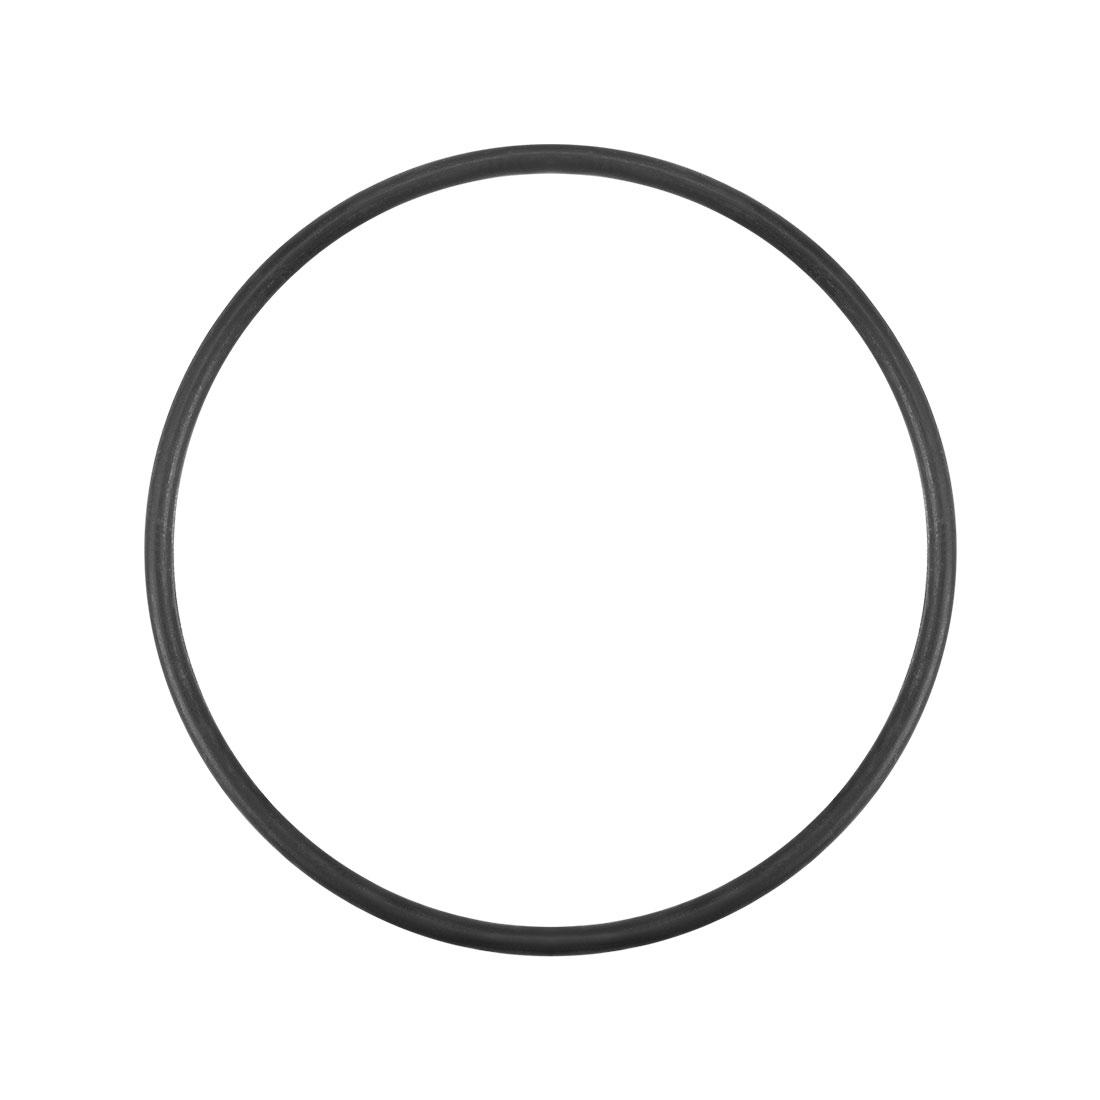 O-Rings Nitrile Rubber 43.7mm x 47.3mm x 1.8mm Round Seal Gasket